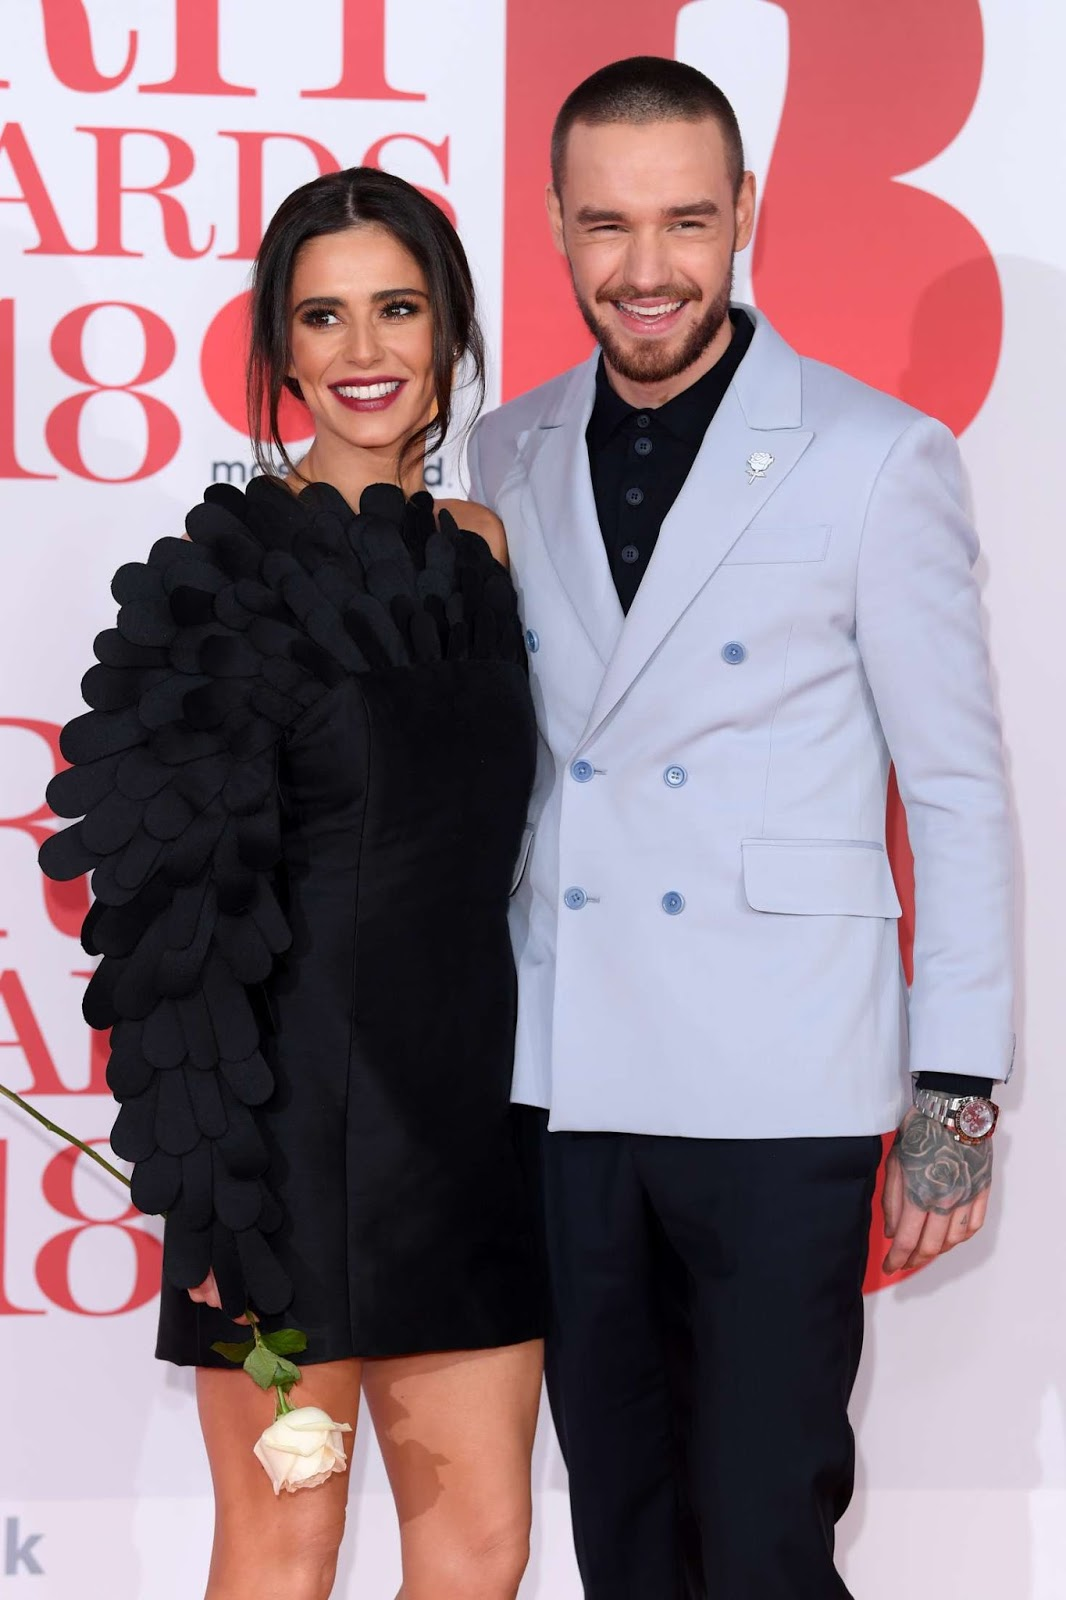 Cheryl and Liam Payne get close at the 2018 BRIT Awards